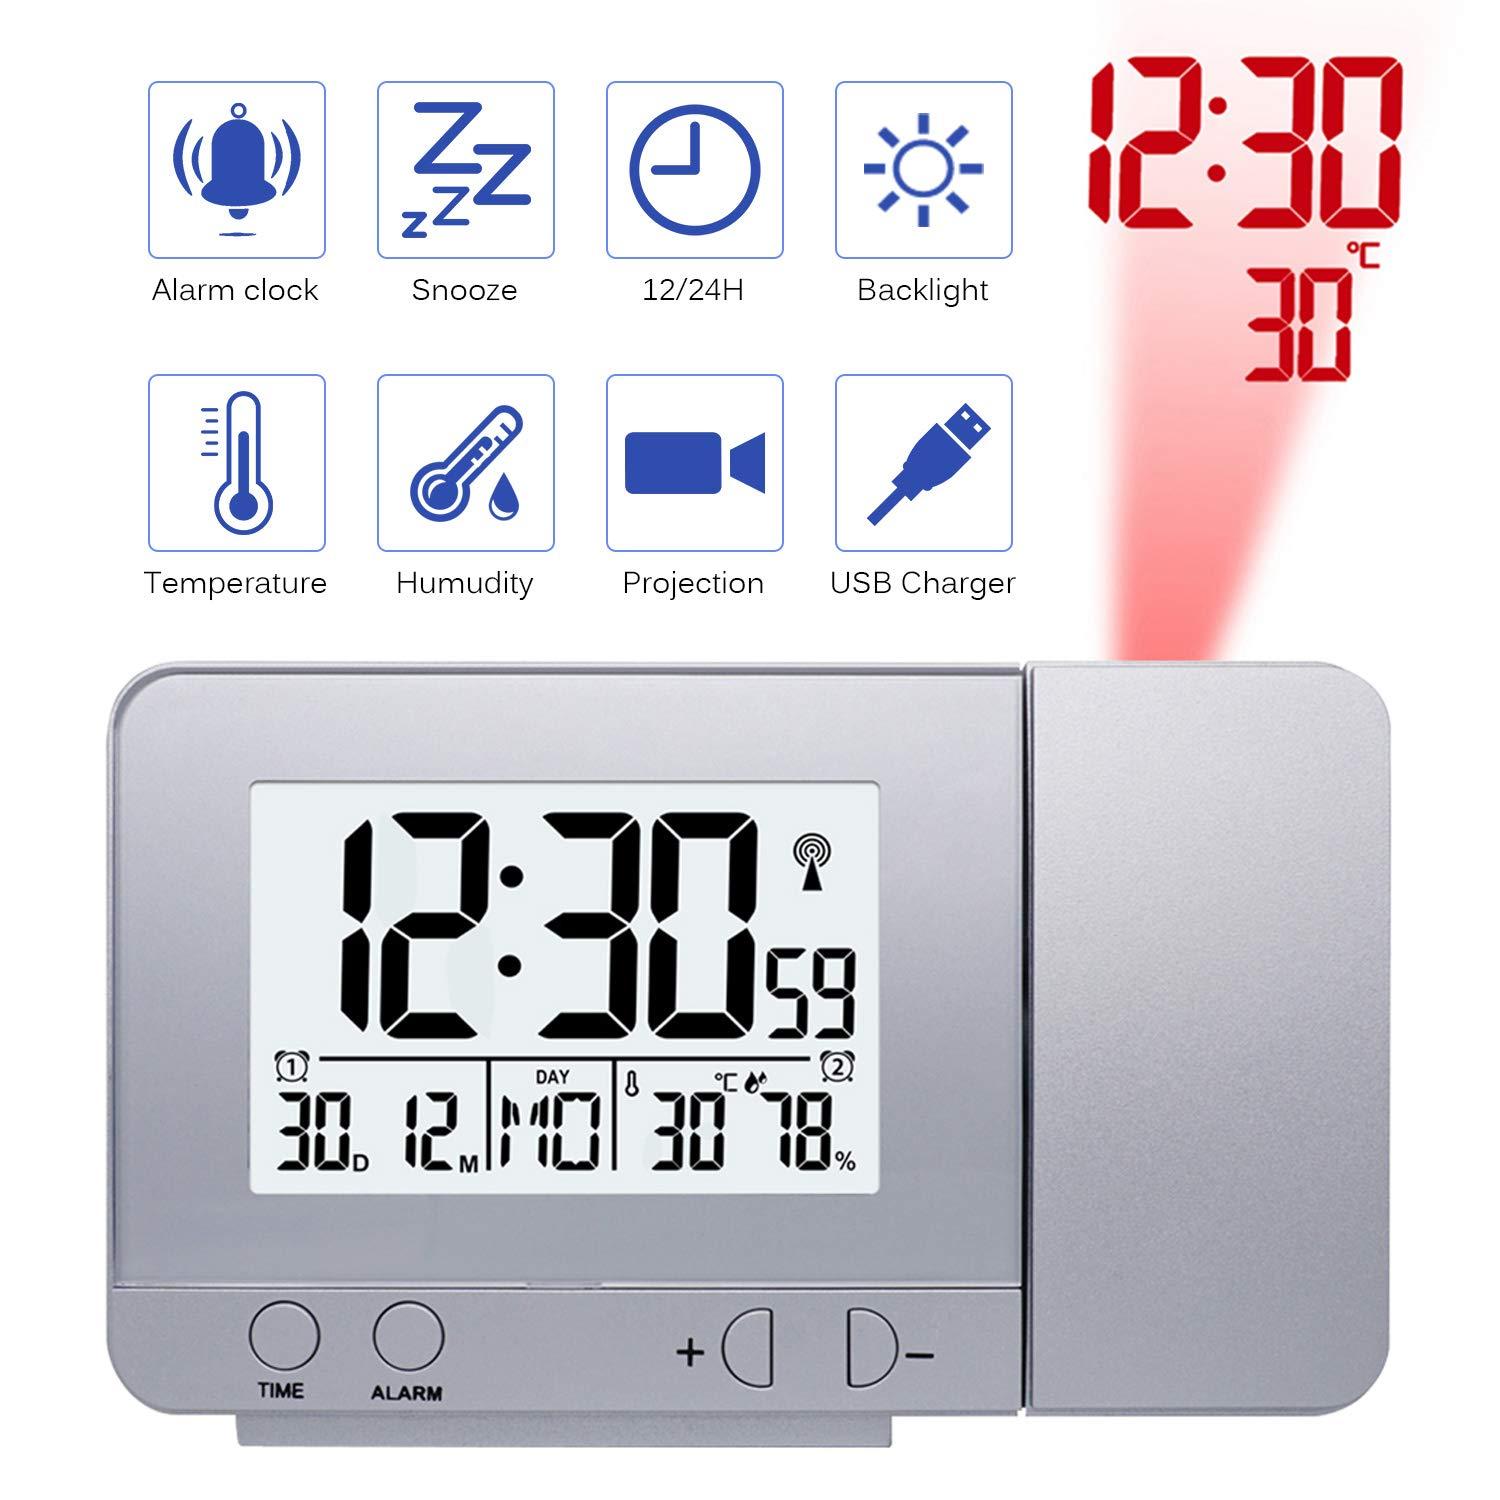 Konesky Digital Projection Clock, Dimmer Bedside Alarm Clock Time Temperature Protector Clock with Snooze Function Humudity Clock USB Battery Powered (Silver)